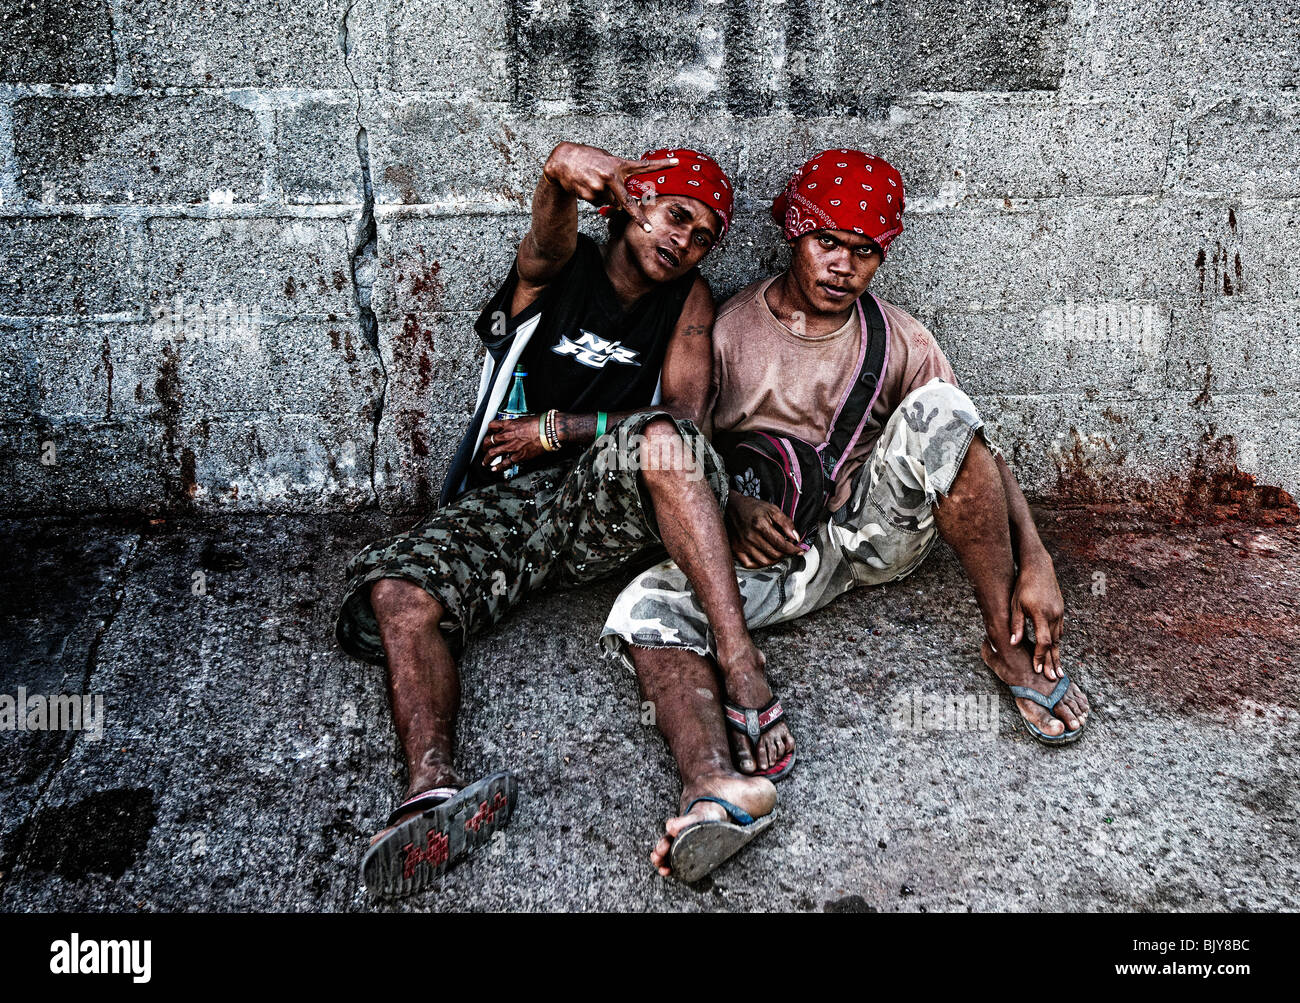 Street boys, Honiara, Solomon Islands - Stock Image